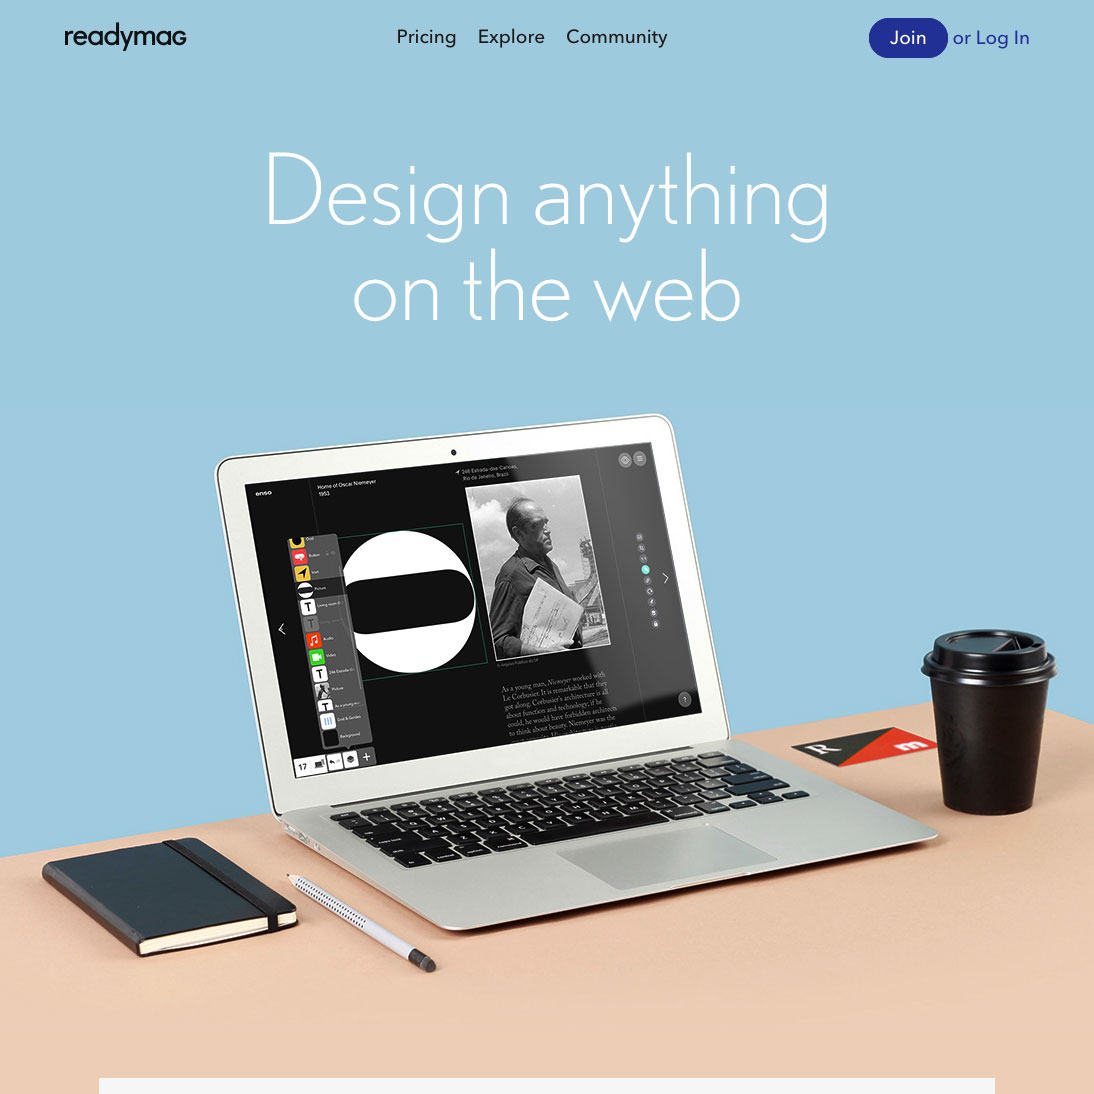 Readymag — Design anything on the web